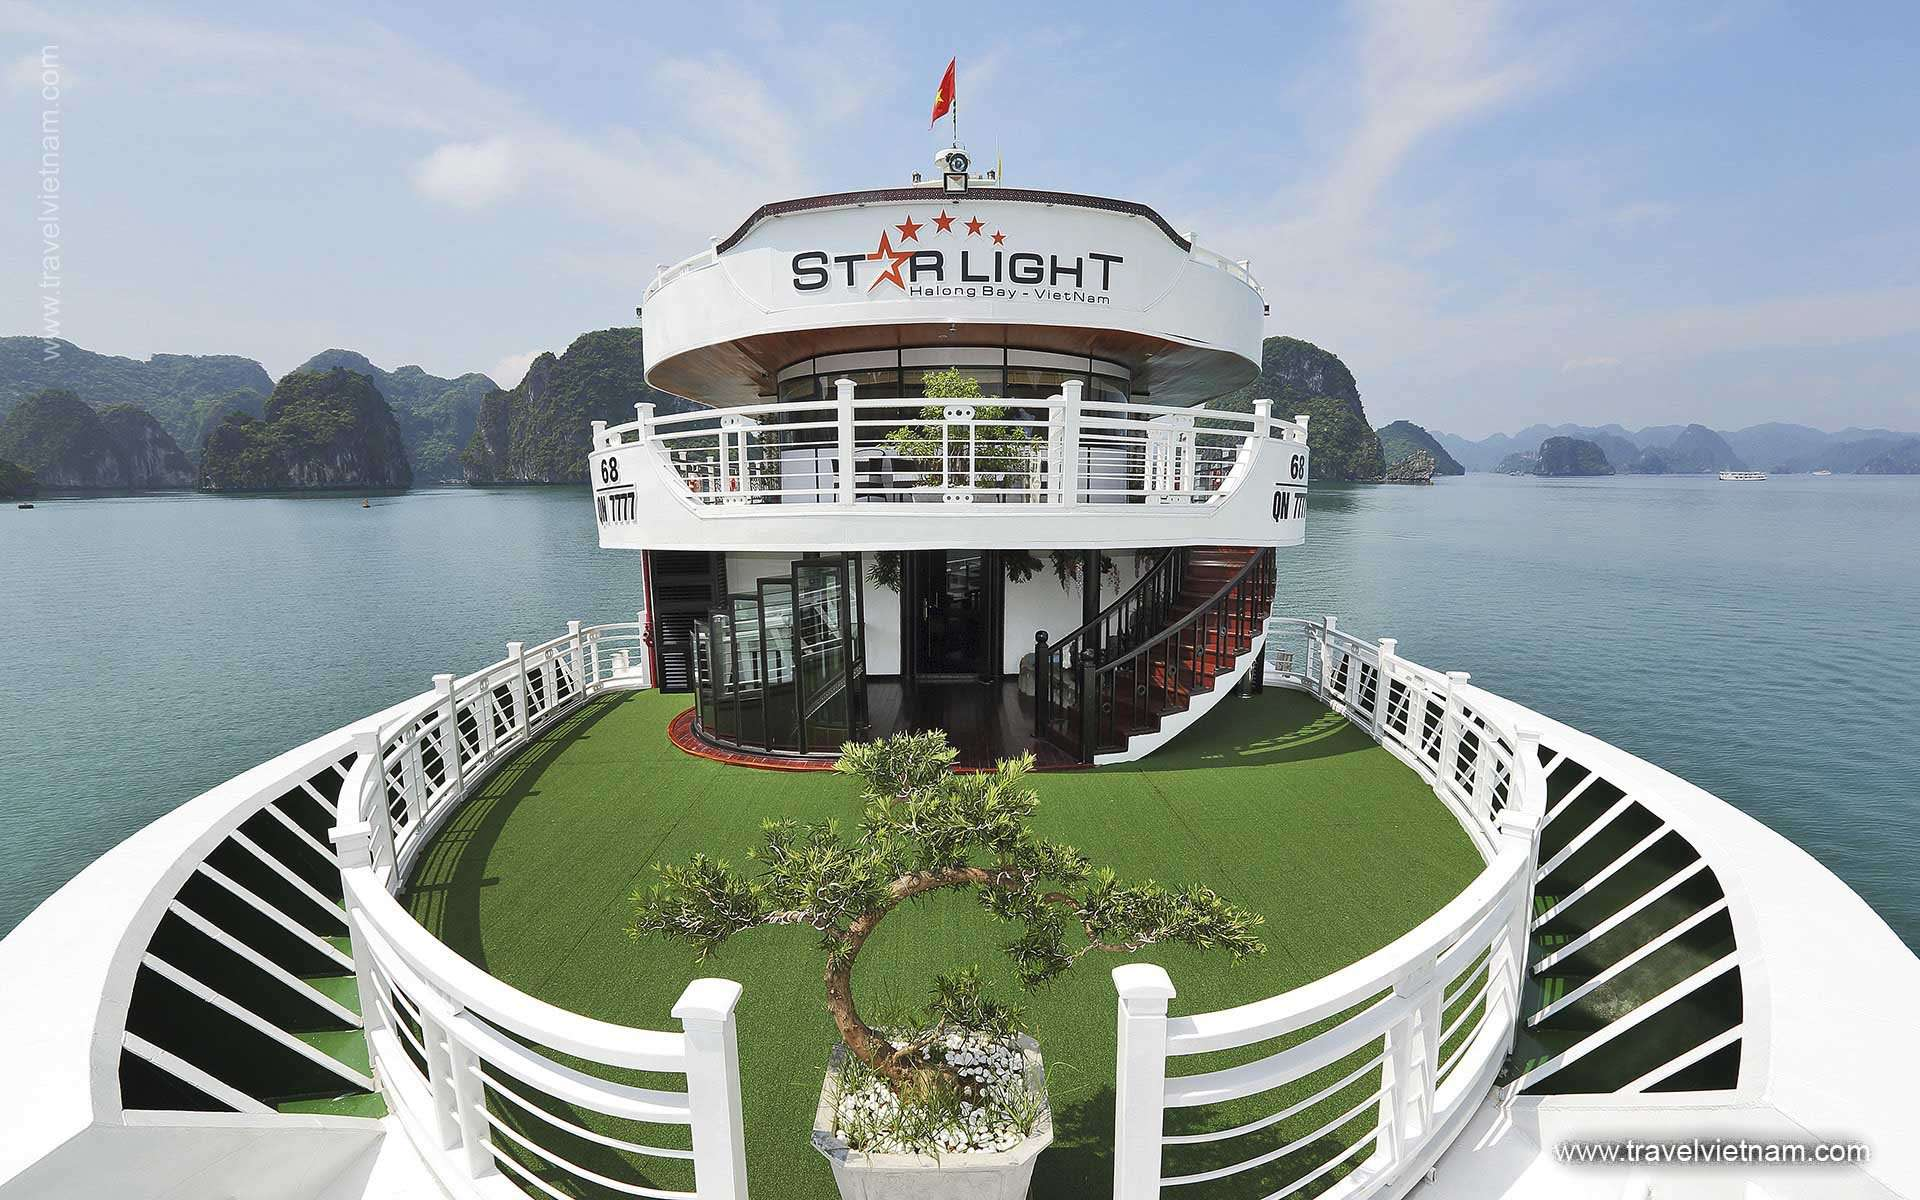 Starlight Cruises